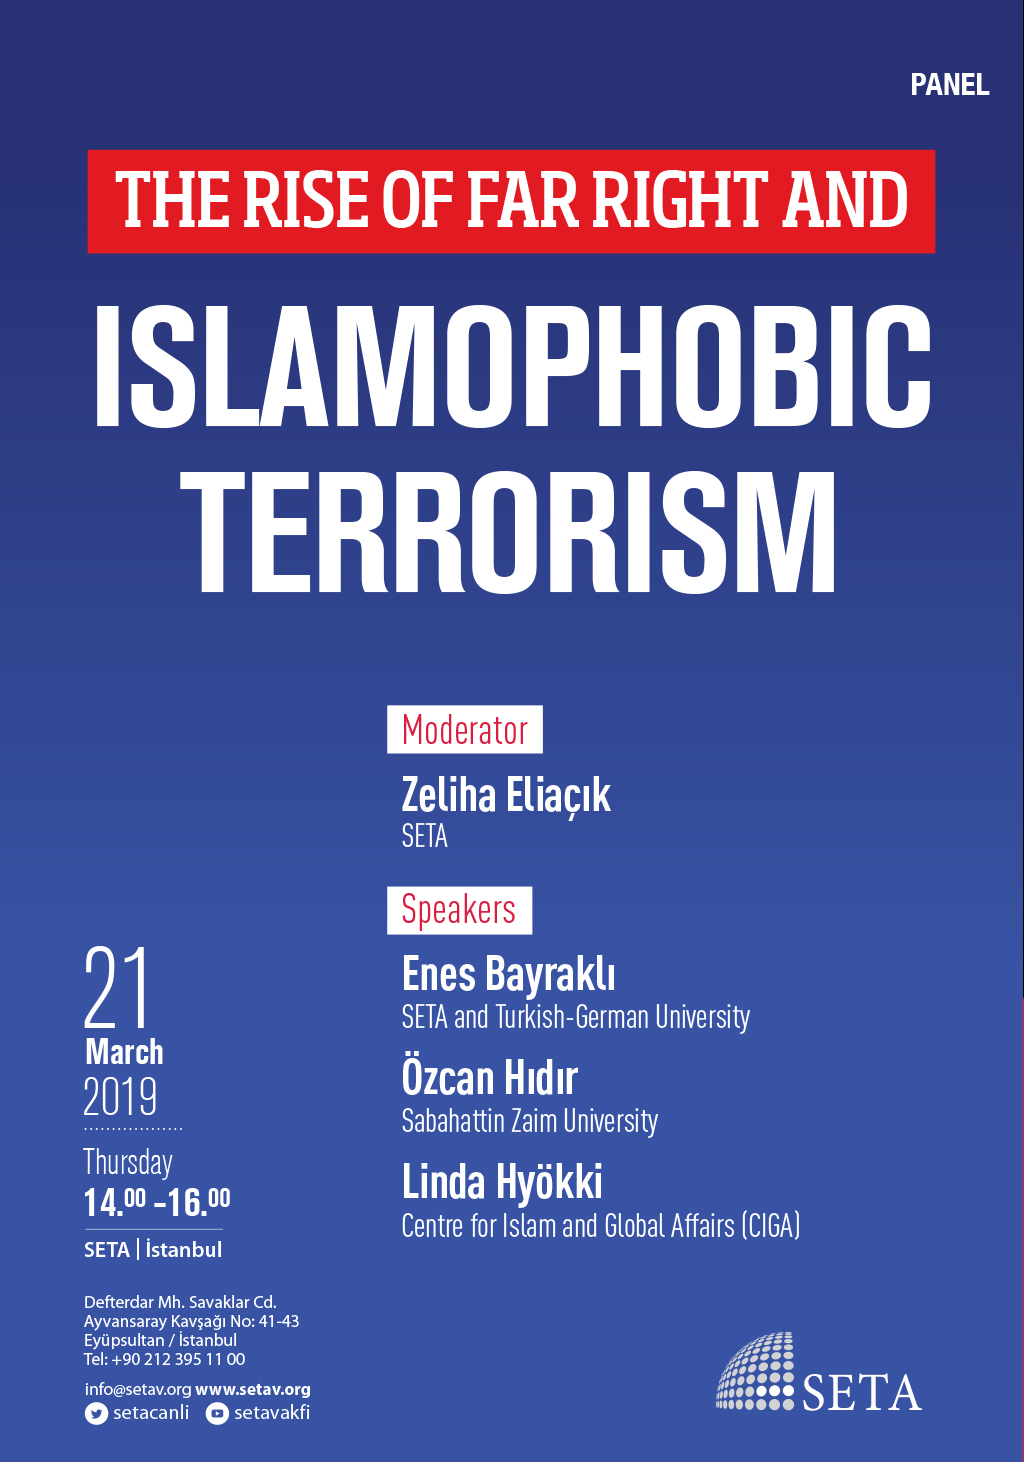 Panel: The Rise of Far Right and Islamophobic Terrorism